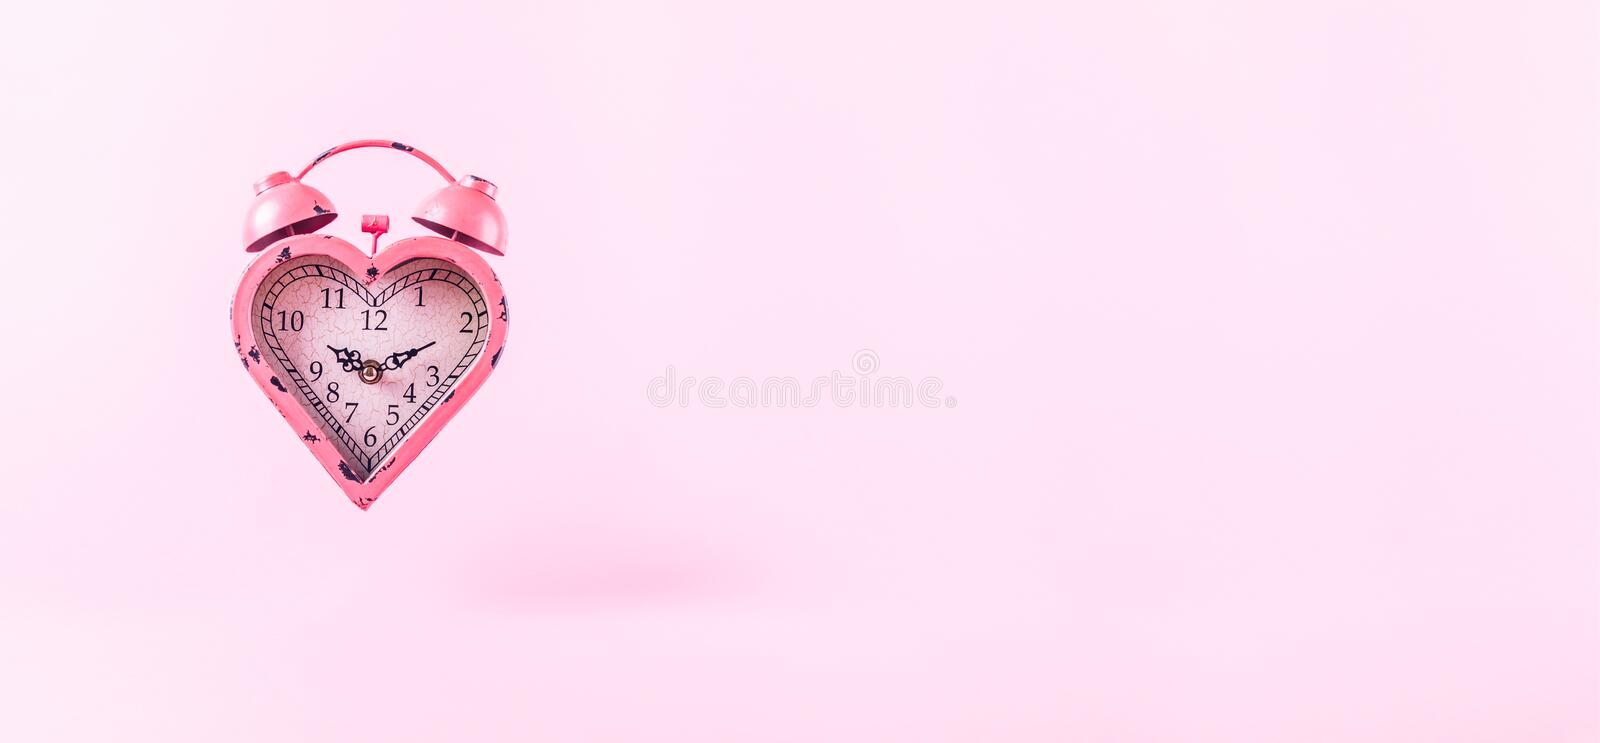 Heart shaped clock on pink background. Valentines day and love royalty free stock photography